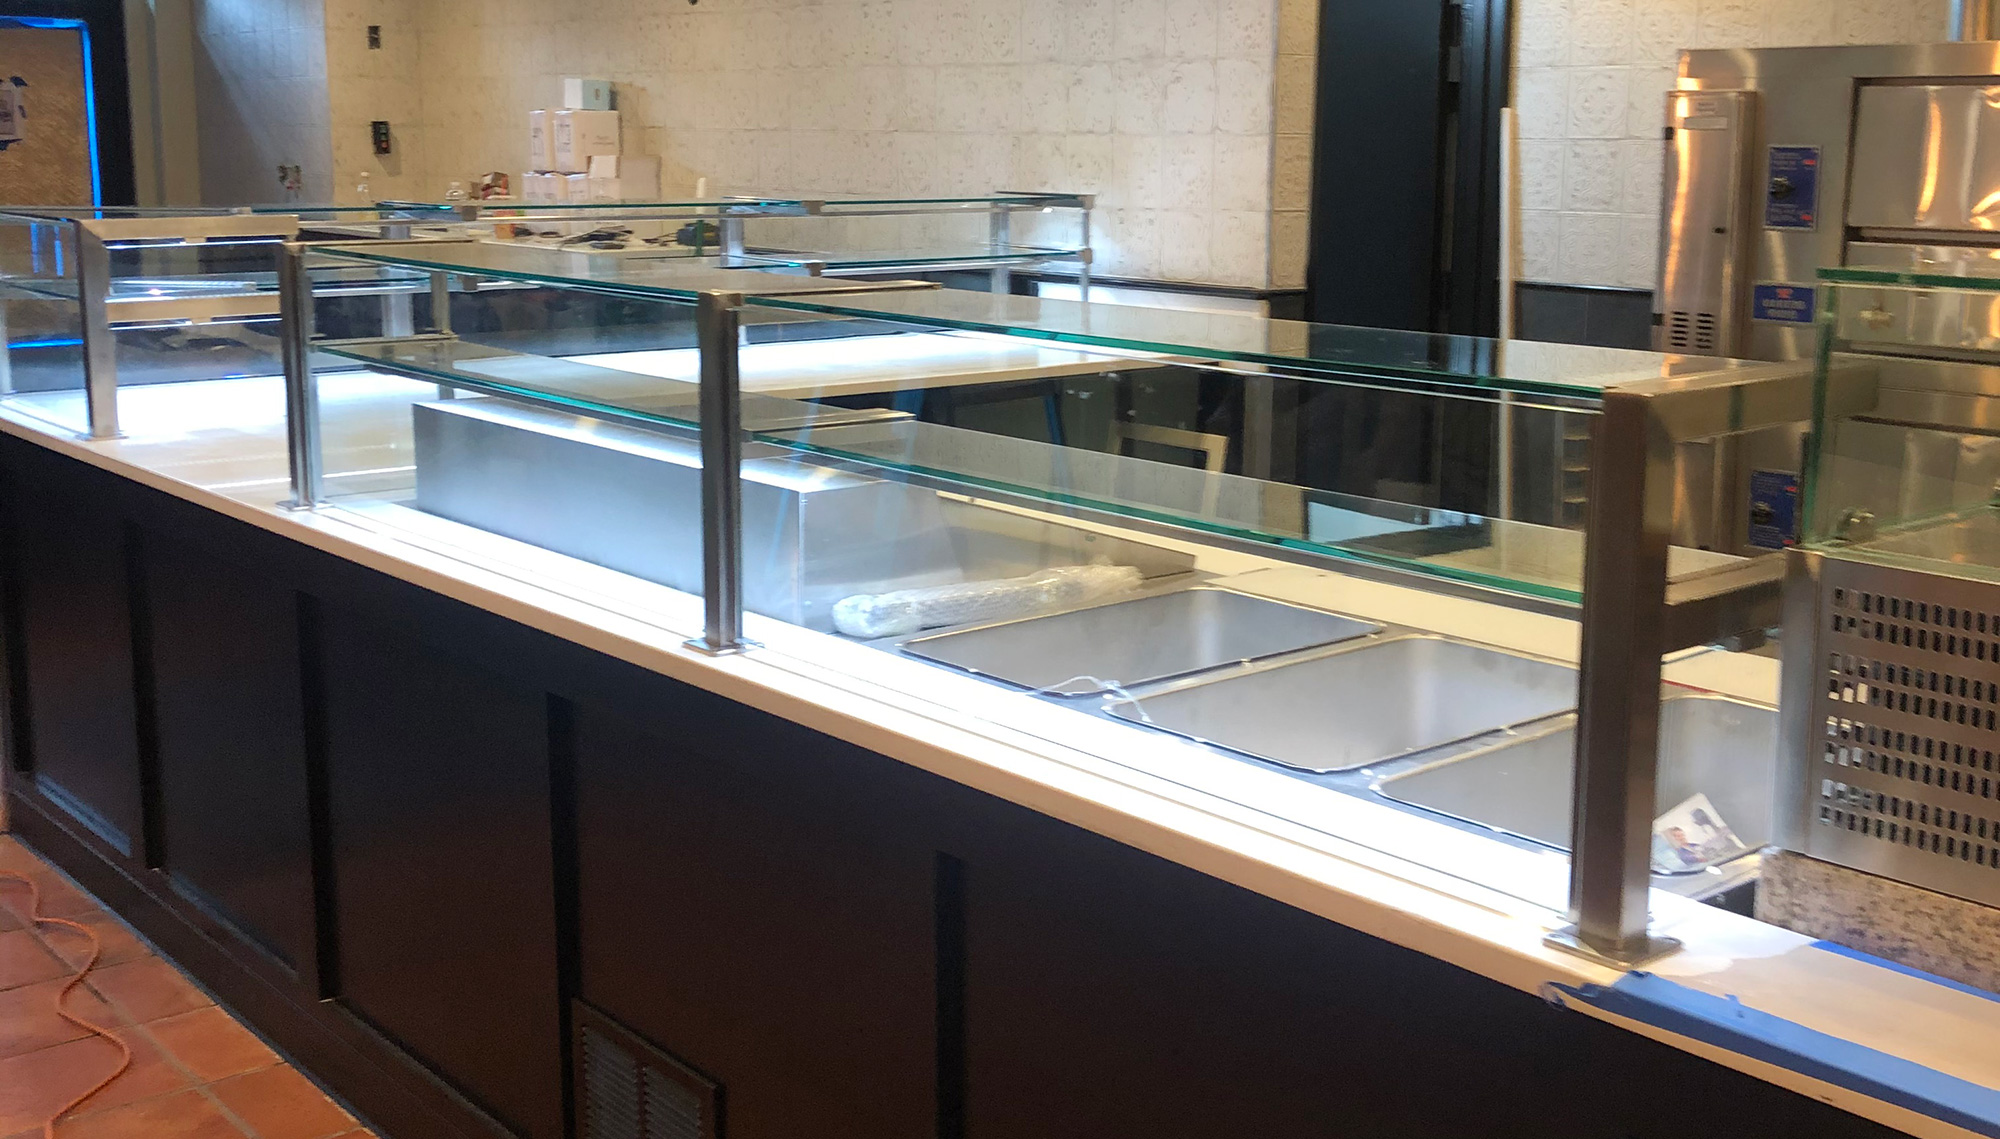 Satin Stainless Steel Food Shields with LED Lights | Joe's Pizzeria - Bronx, NY